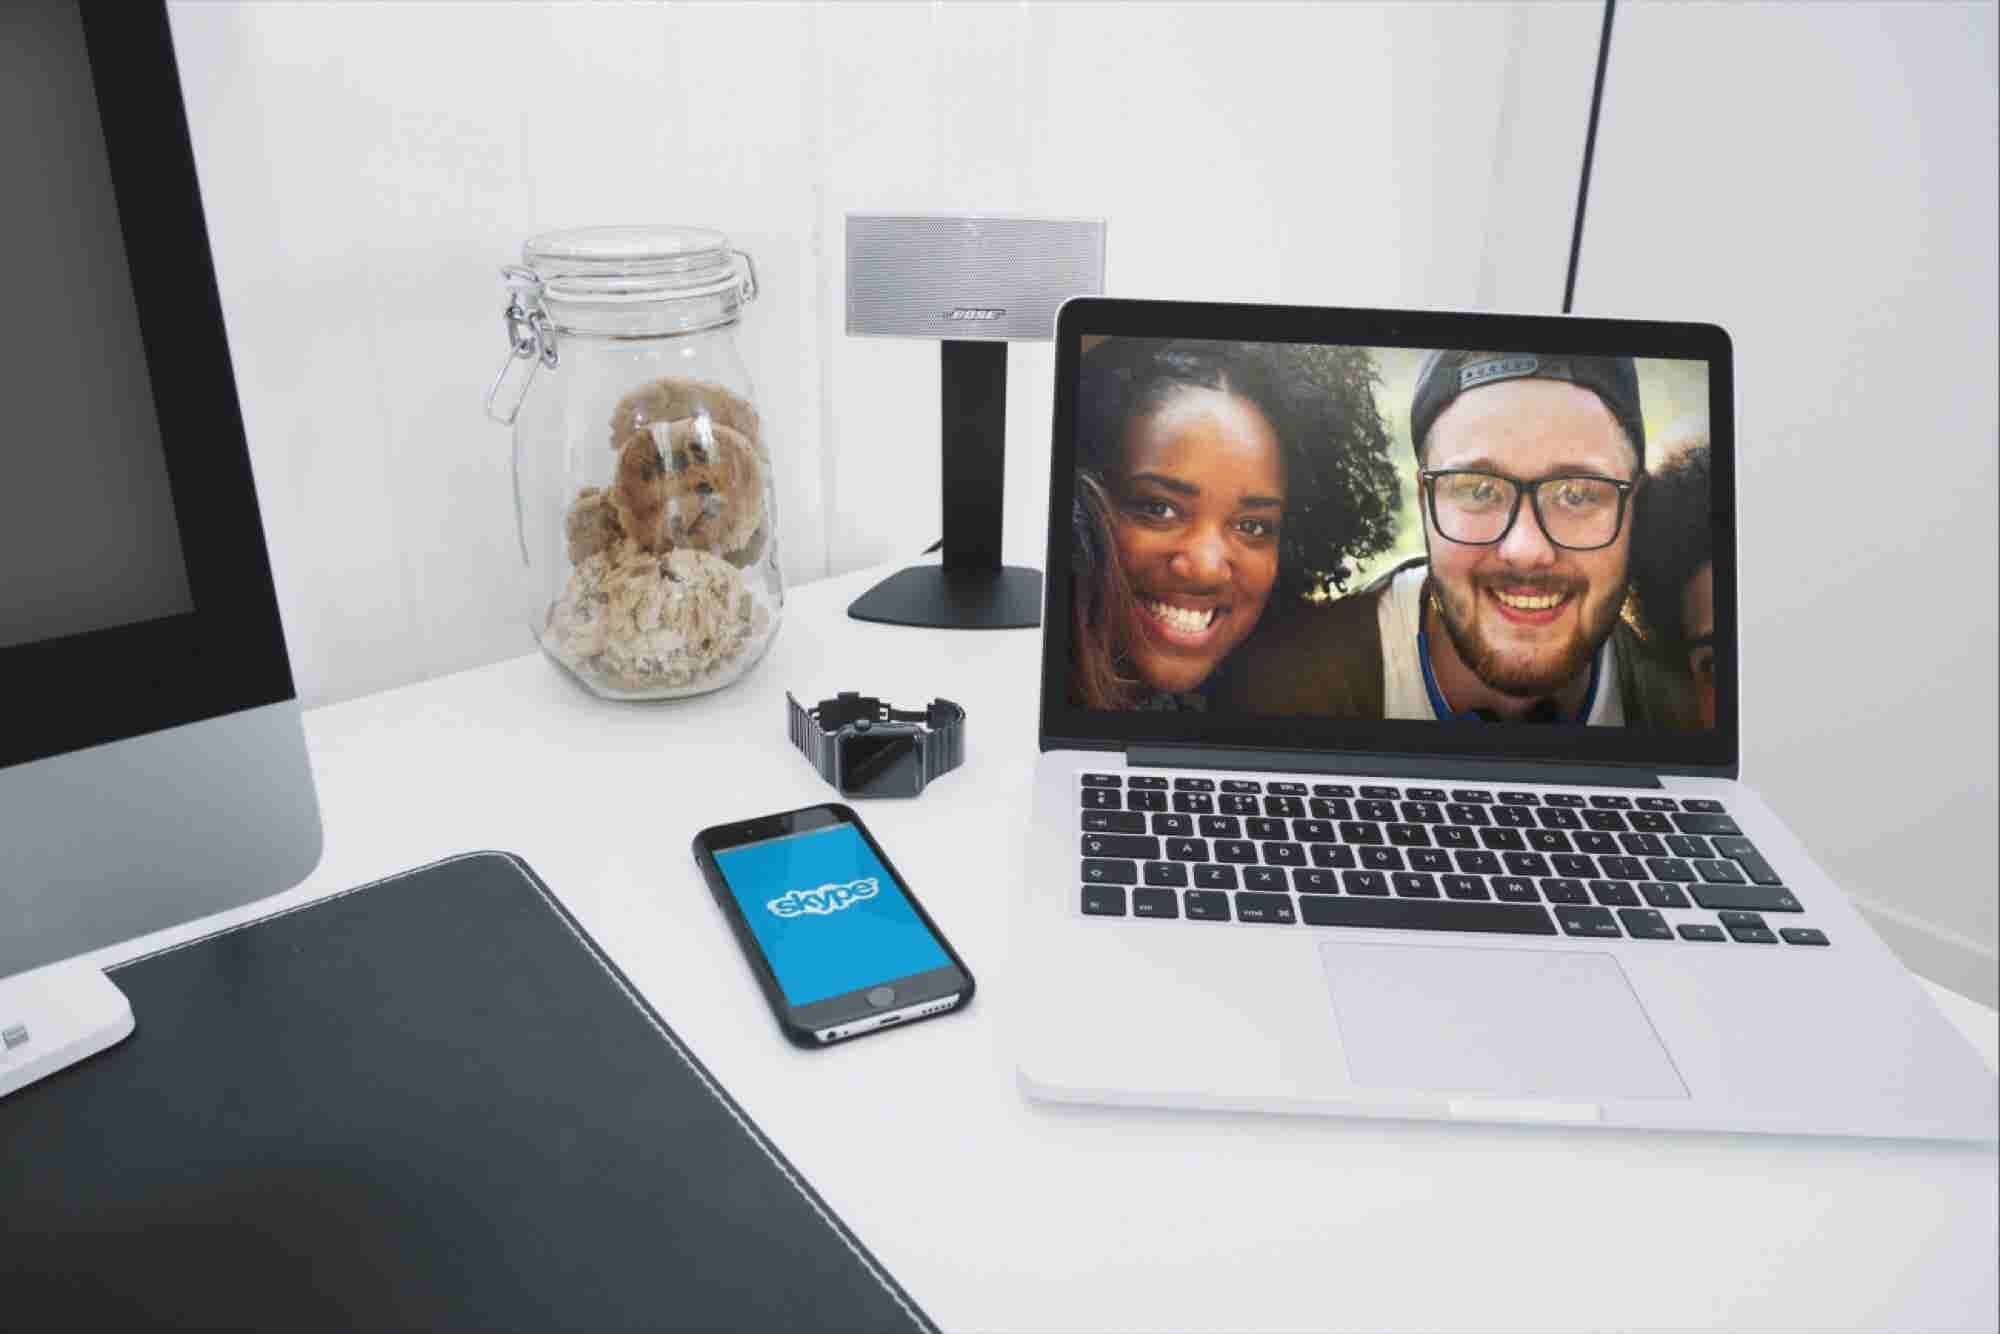 Remote Teams: Good for Your Company or a Productivity Nightmare? (Infographic)